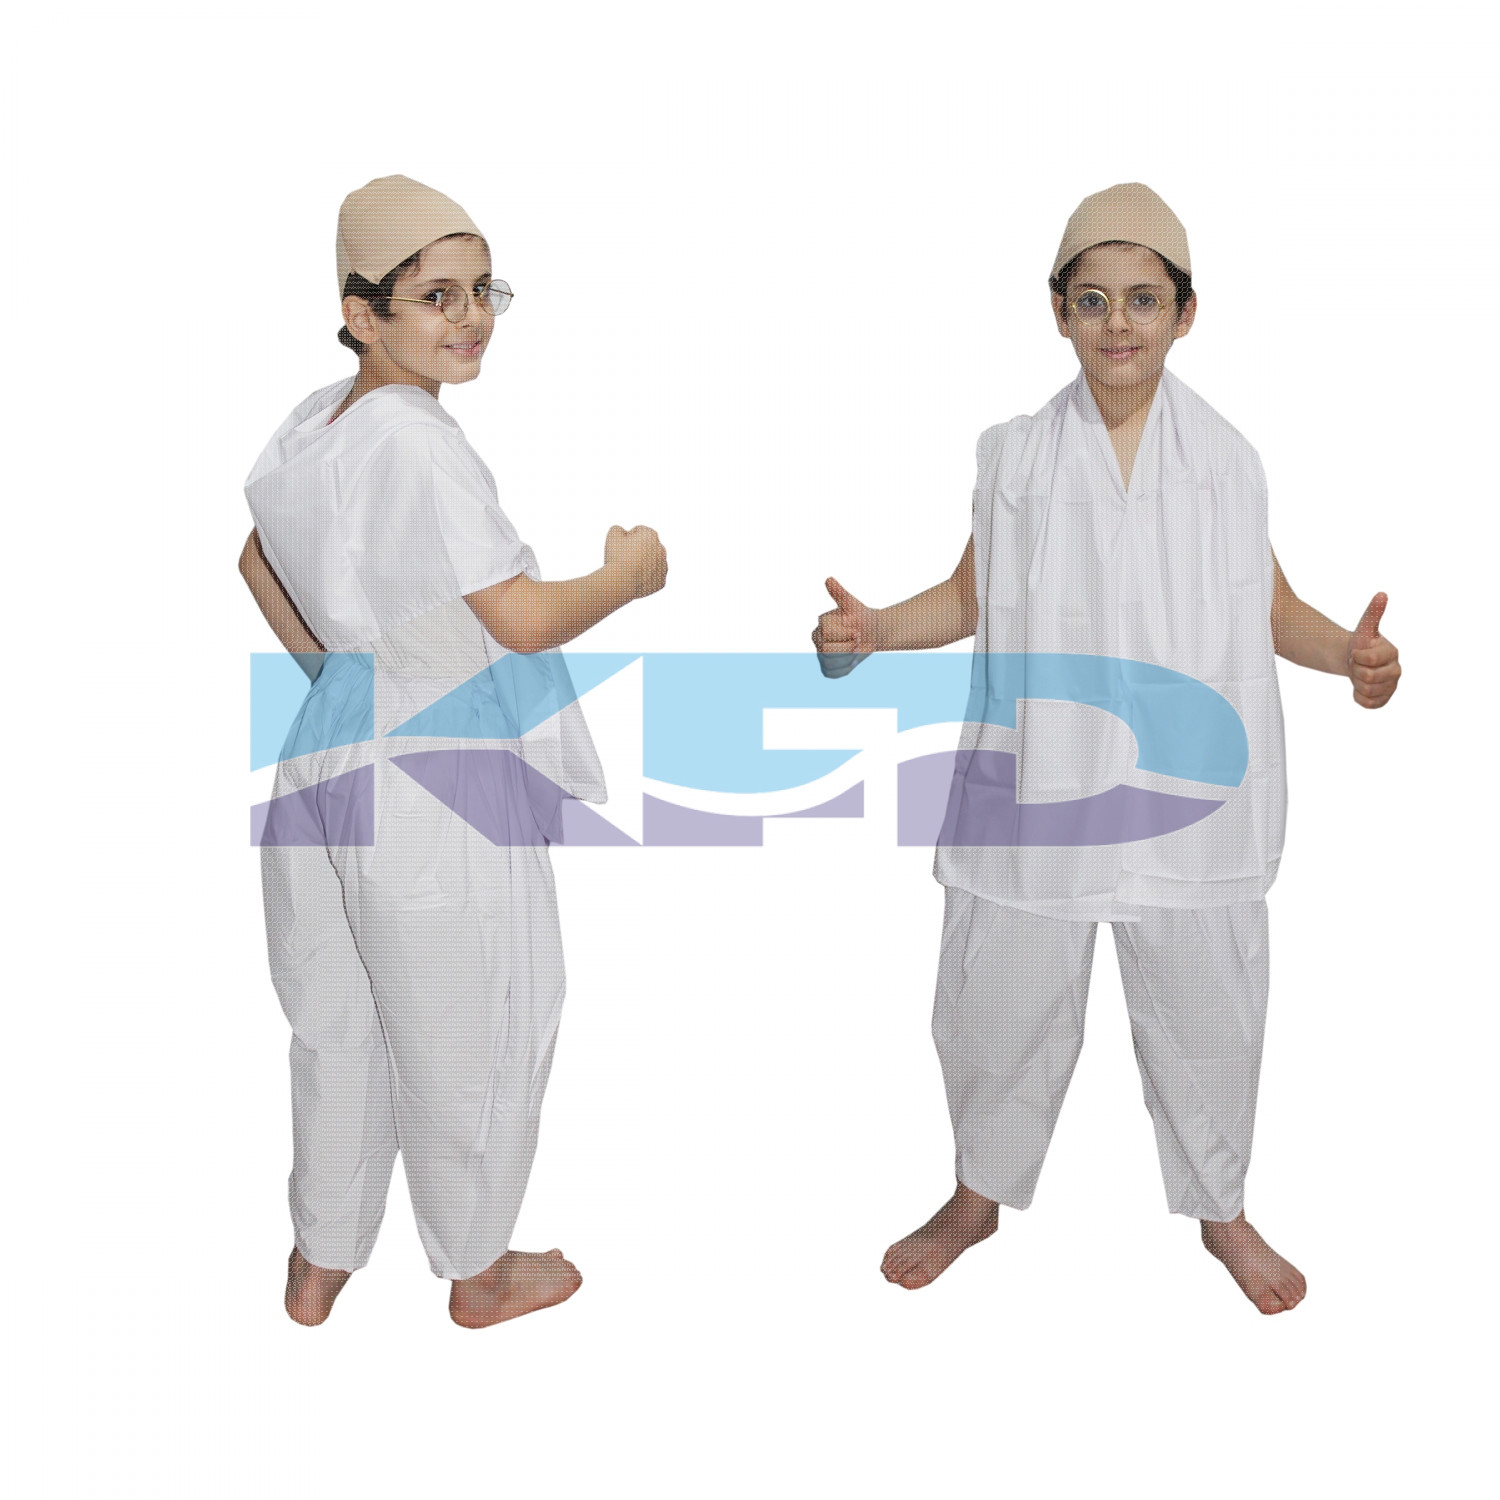 Gandhi Ji fancy dress for kids,National Hero/freedom figter Costume for Independence Day/Republic Day/Annual function/Theme Party/Competition/Stage Shows Dress